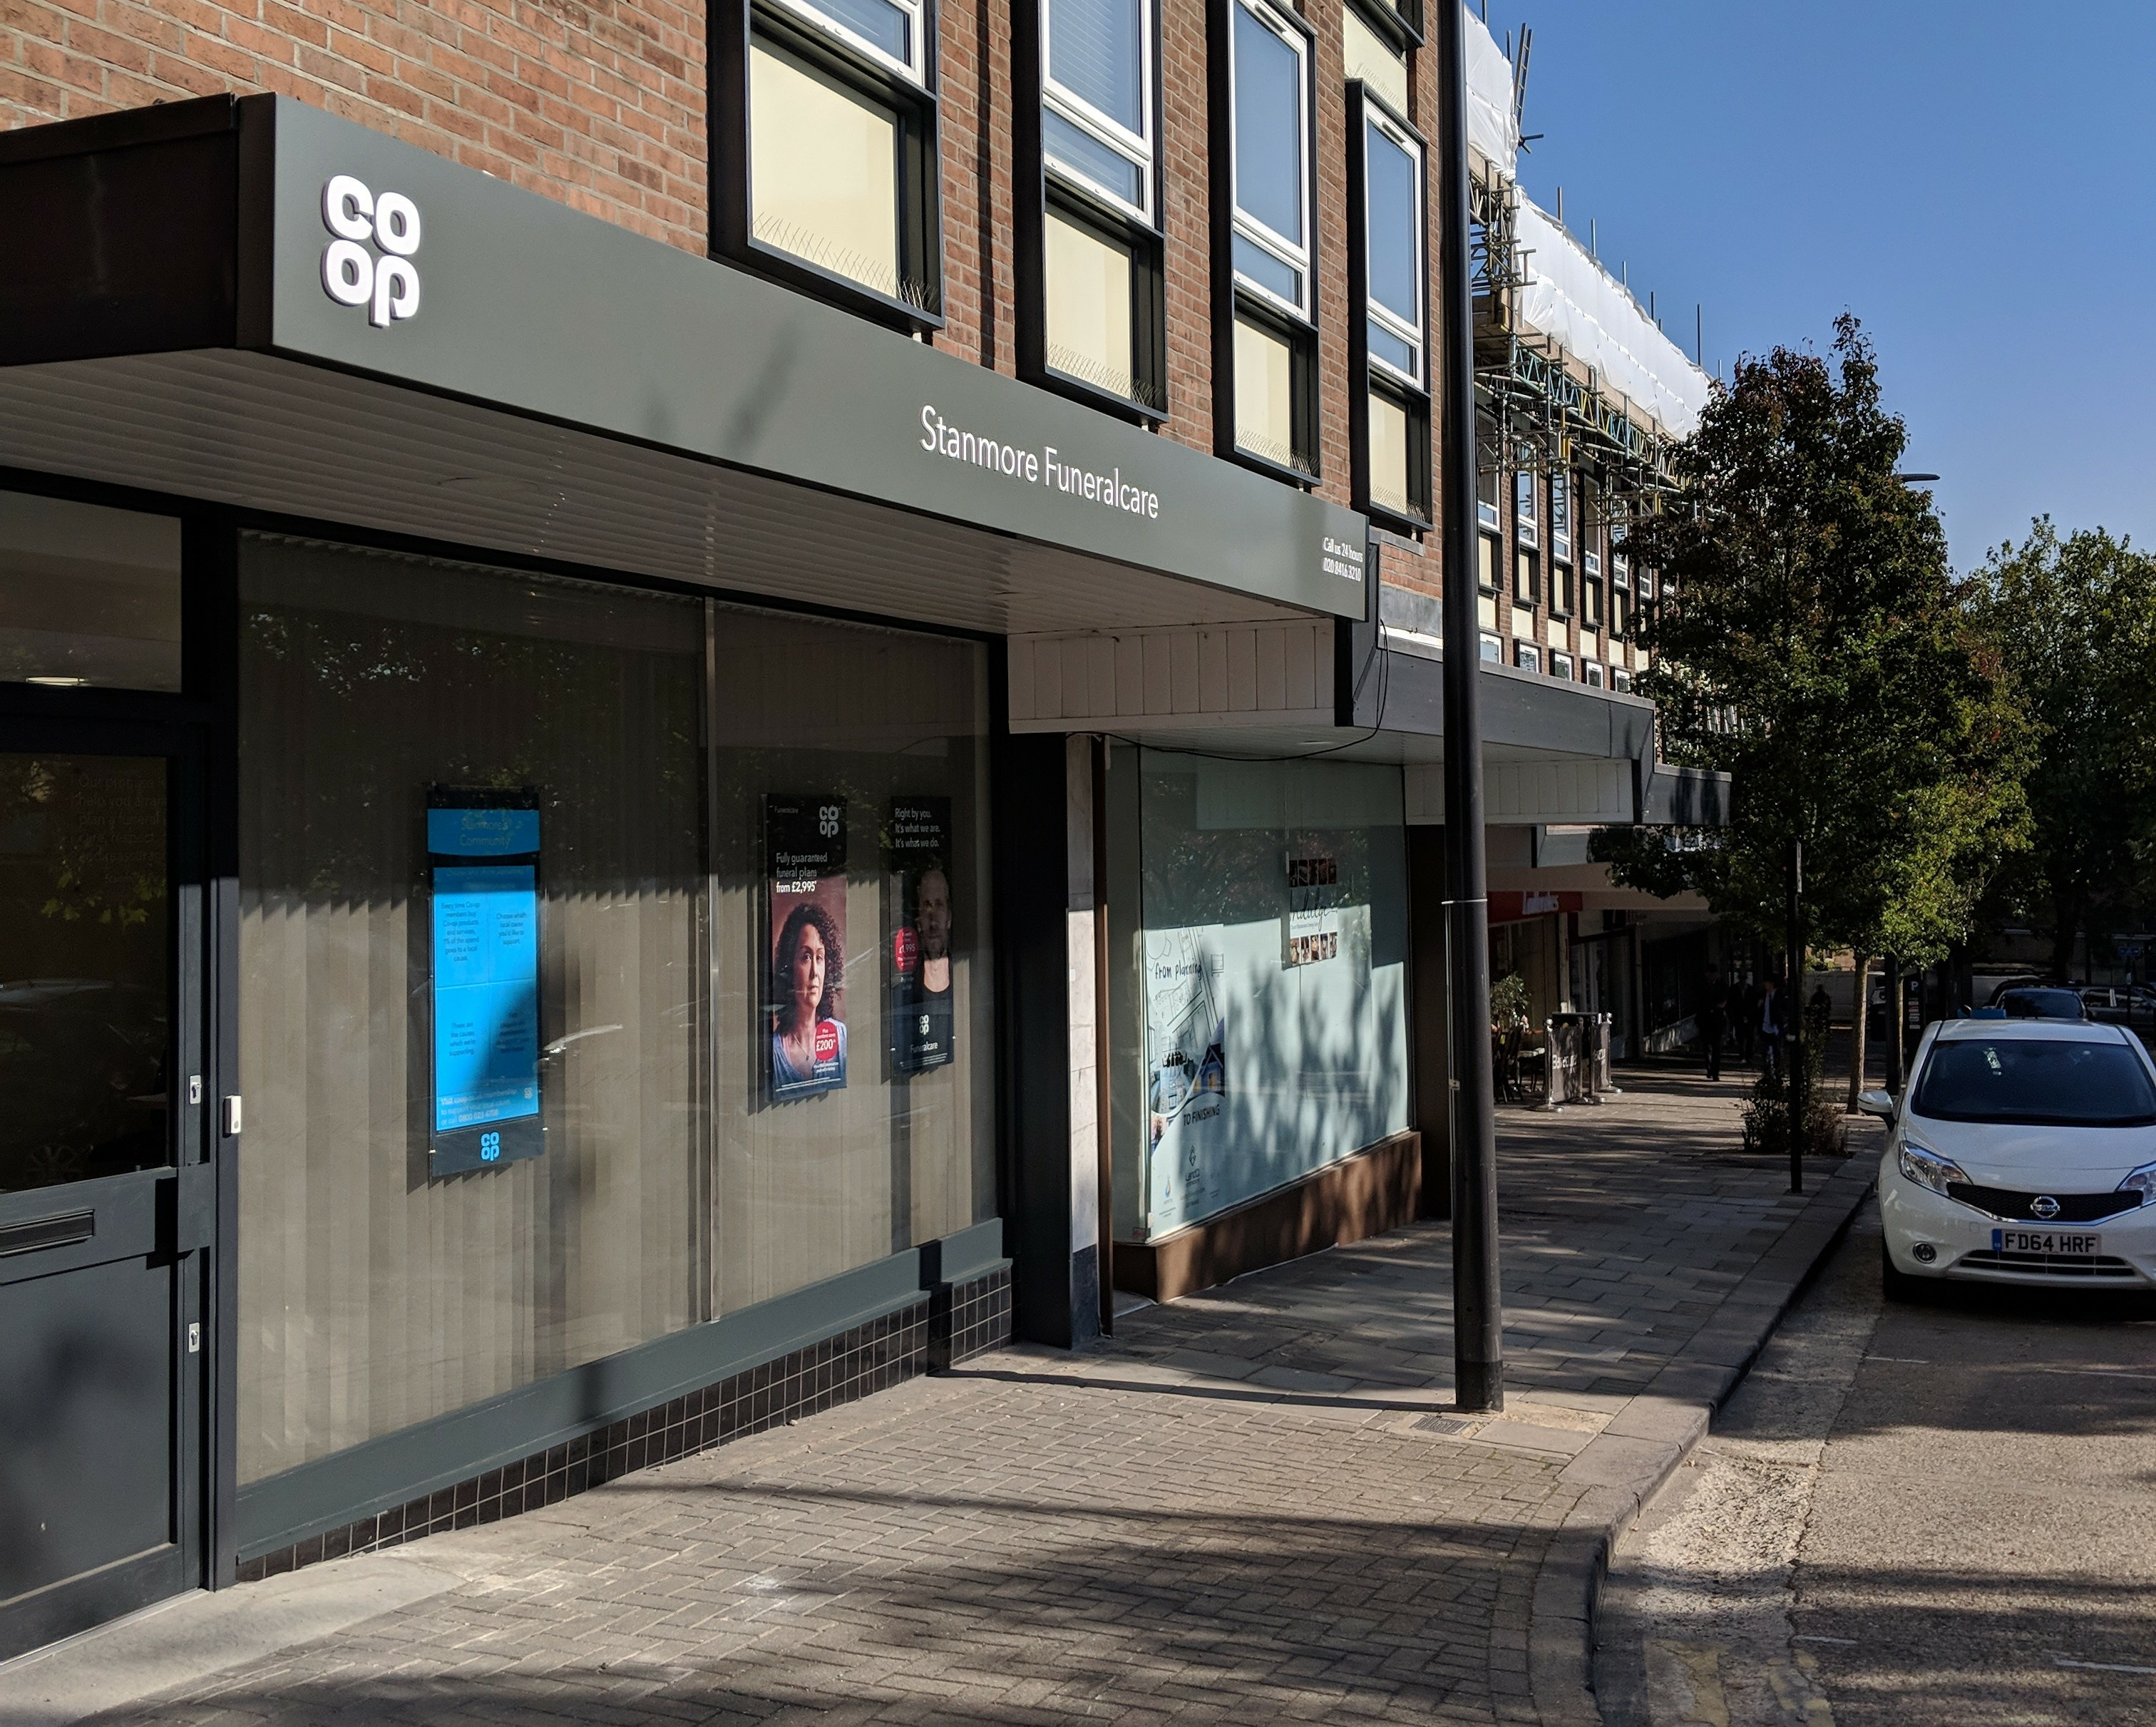 Co-op funeralcare, Stanmore (1)